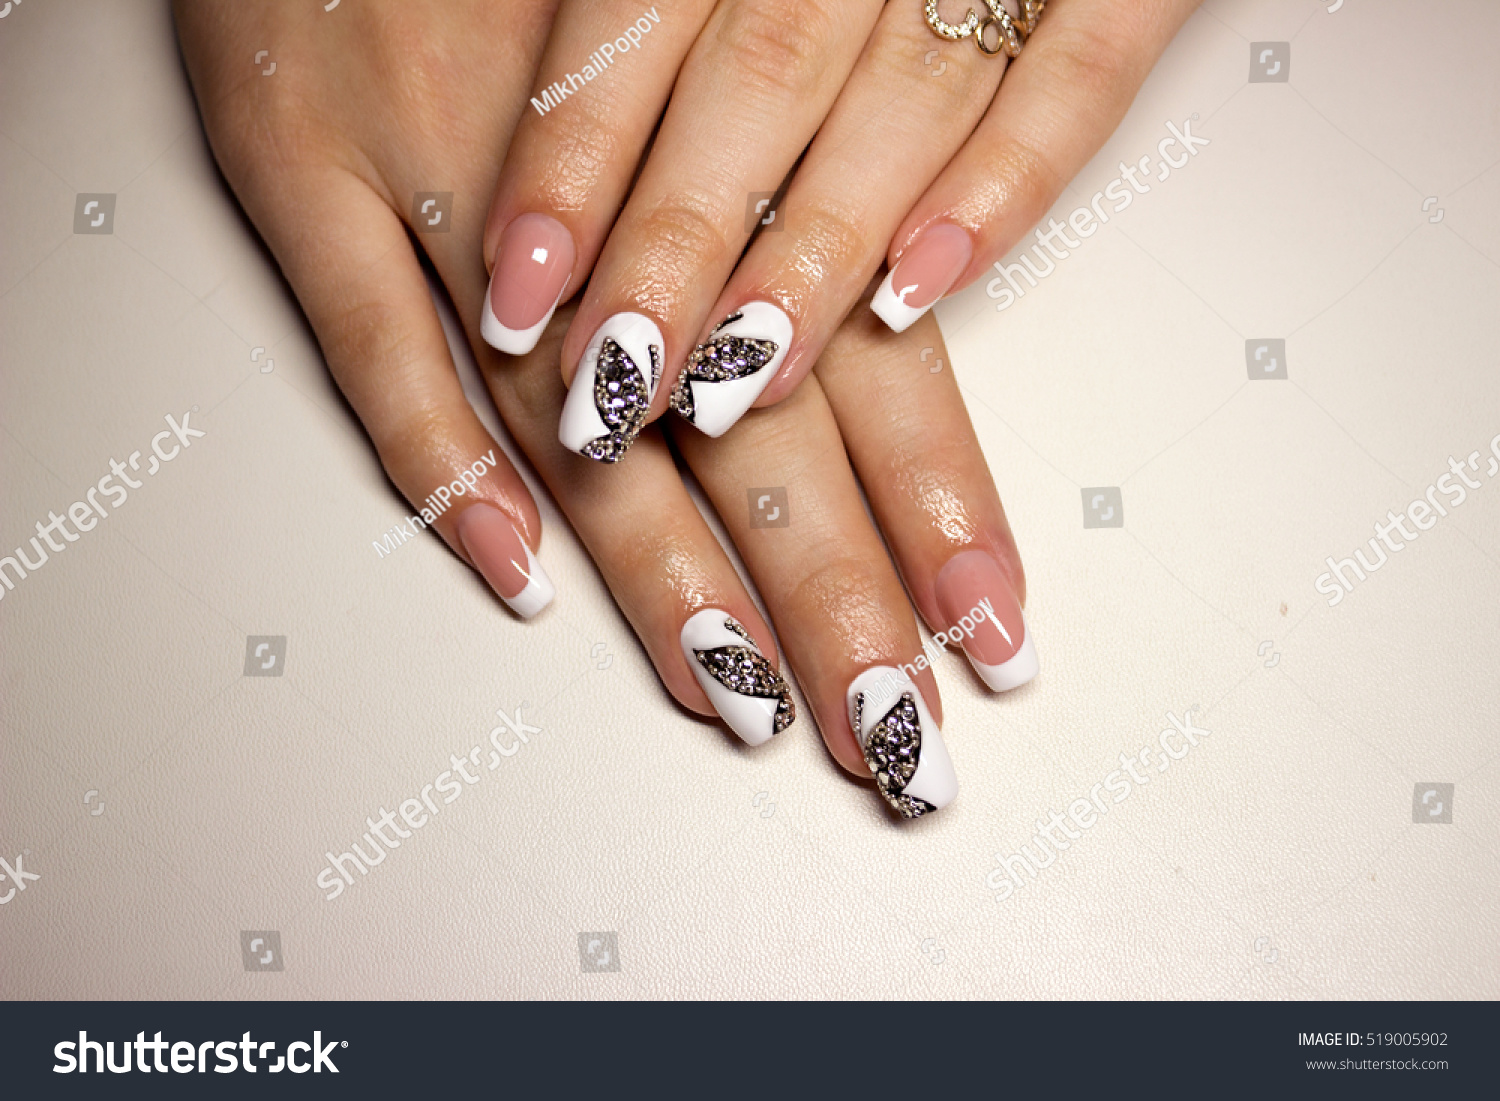 Nail Design White French Manicure Black Stock Photo (Royalty Free ...